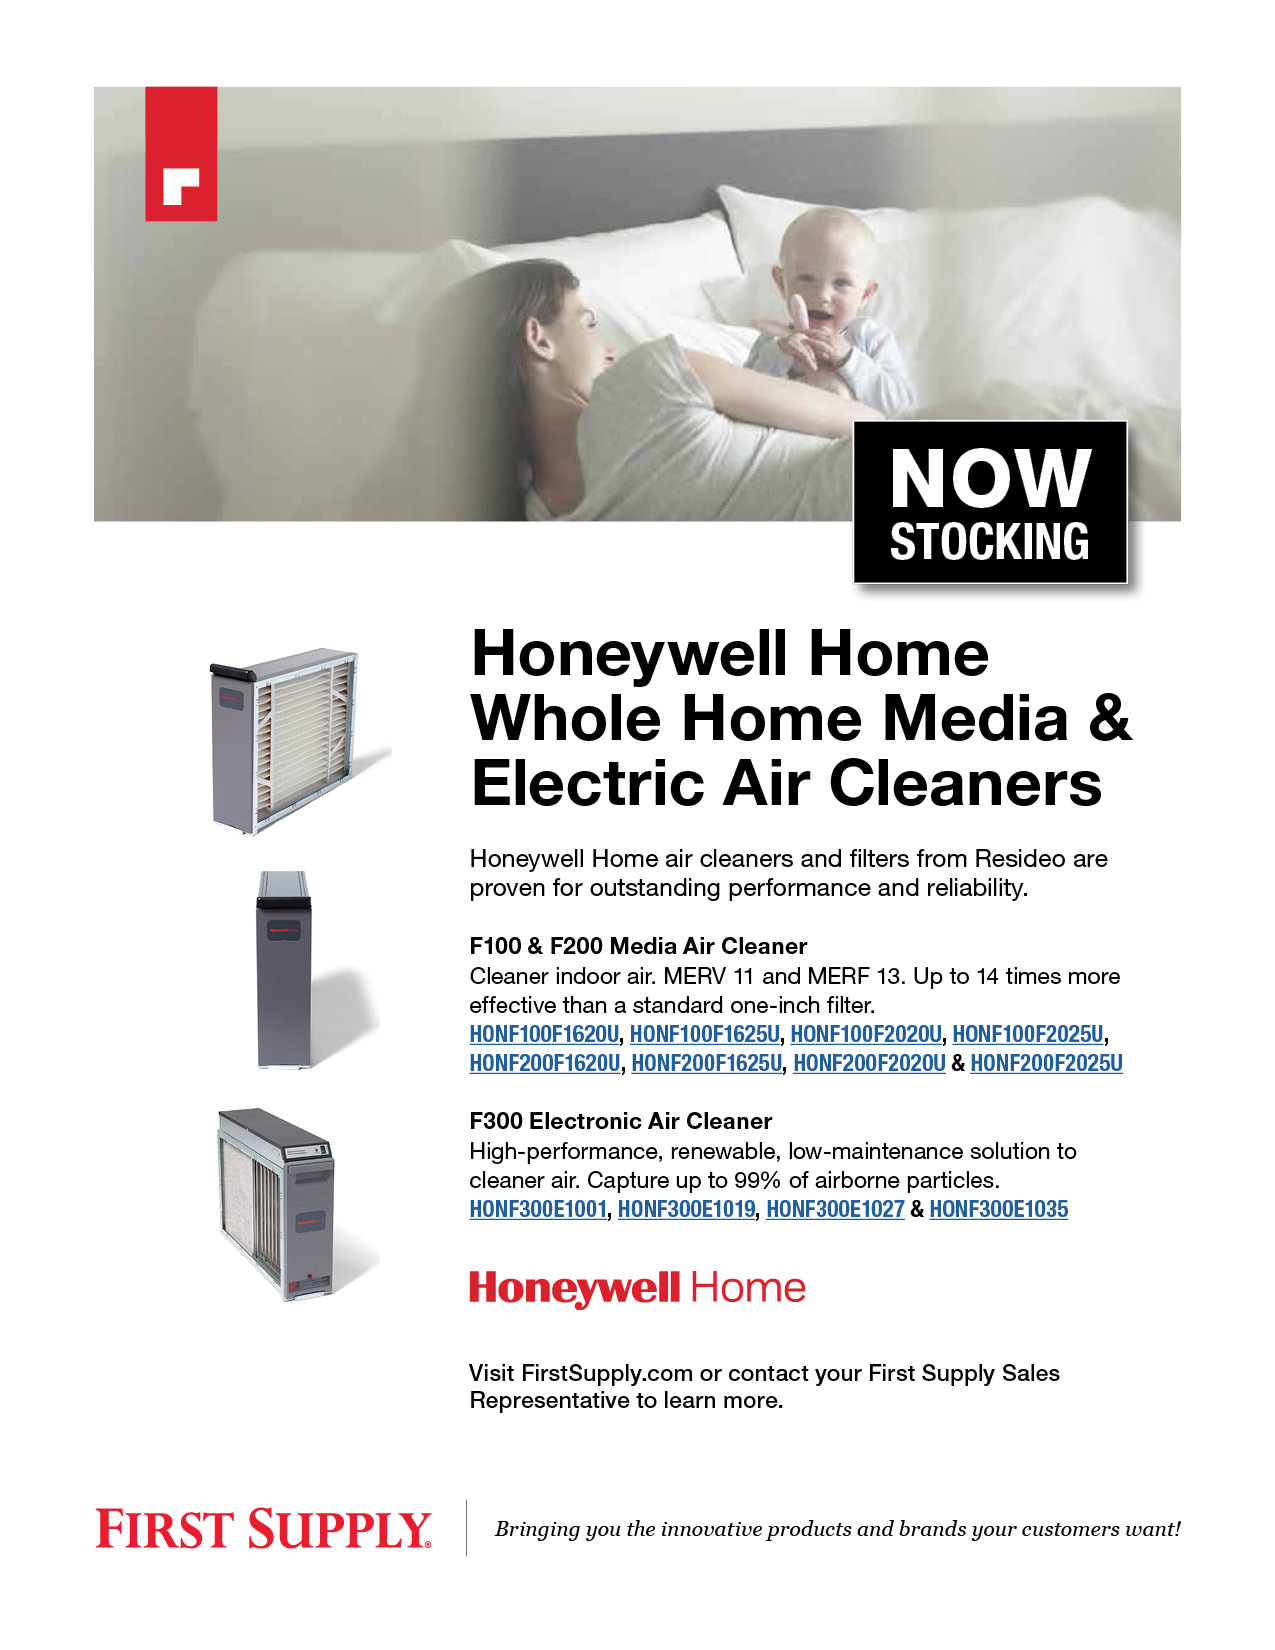 Honeywell Home Whole Home Media and Electric Air Cleaners